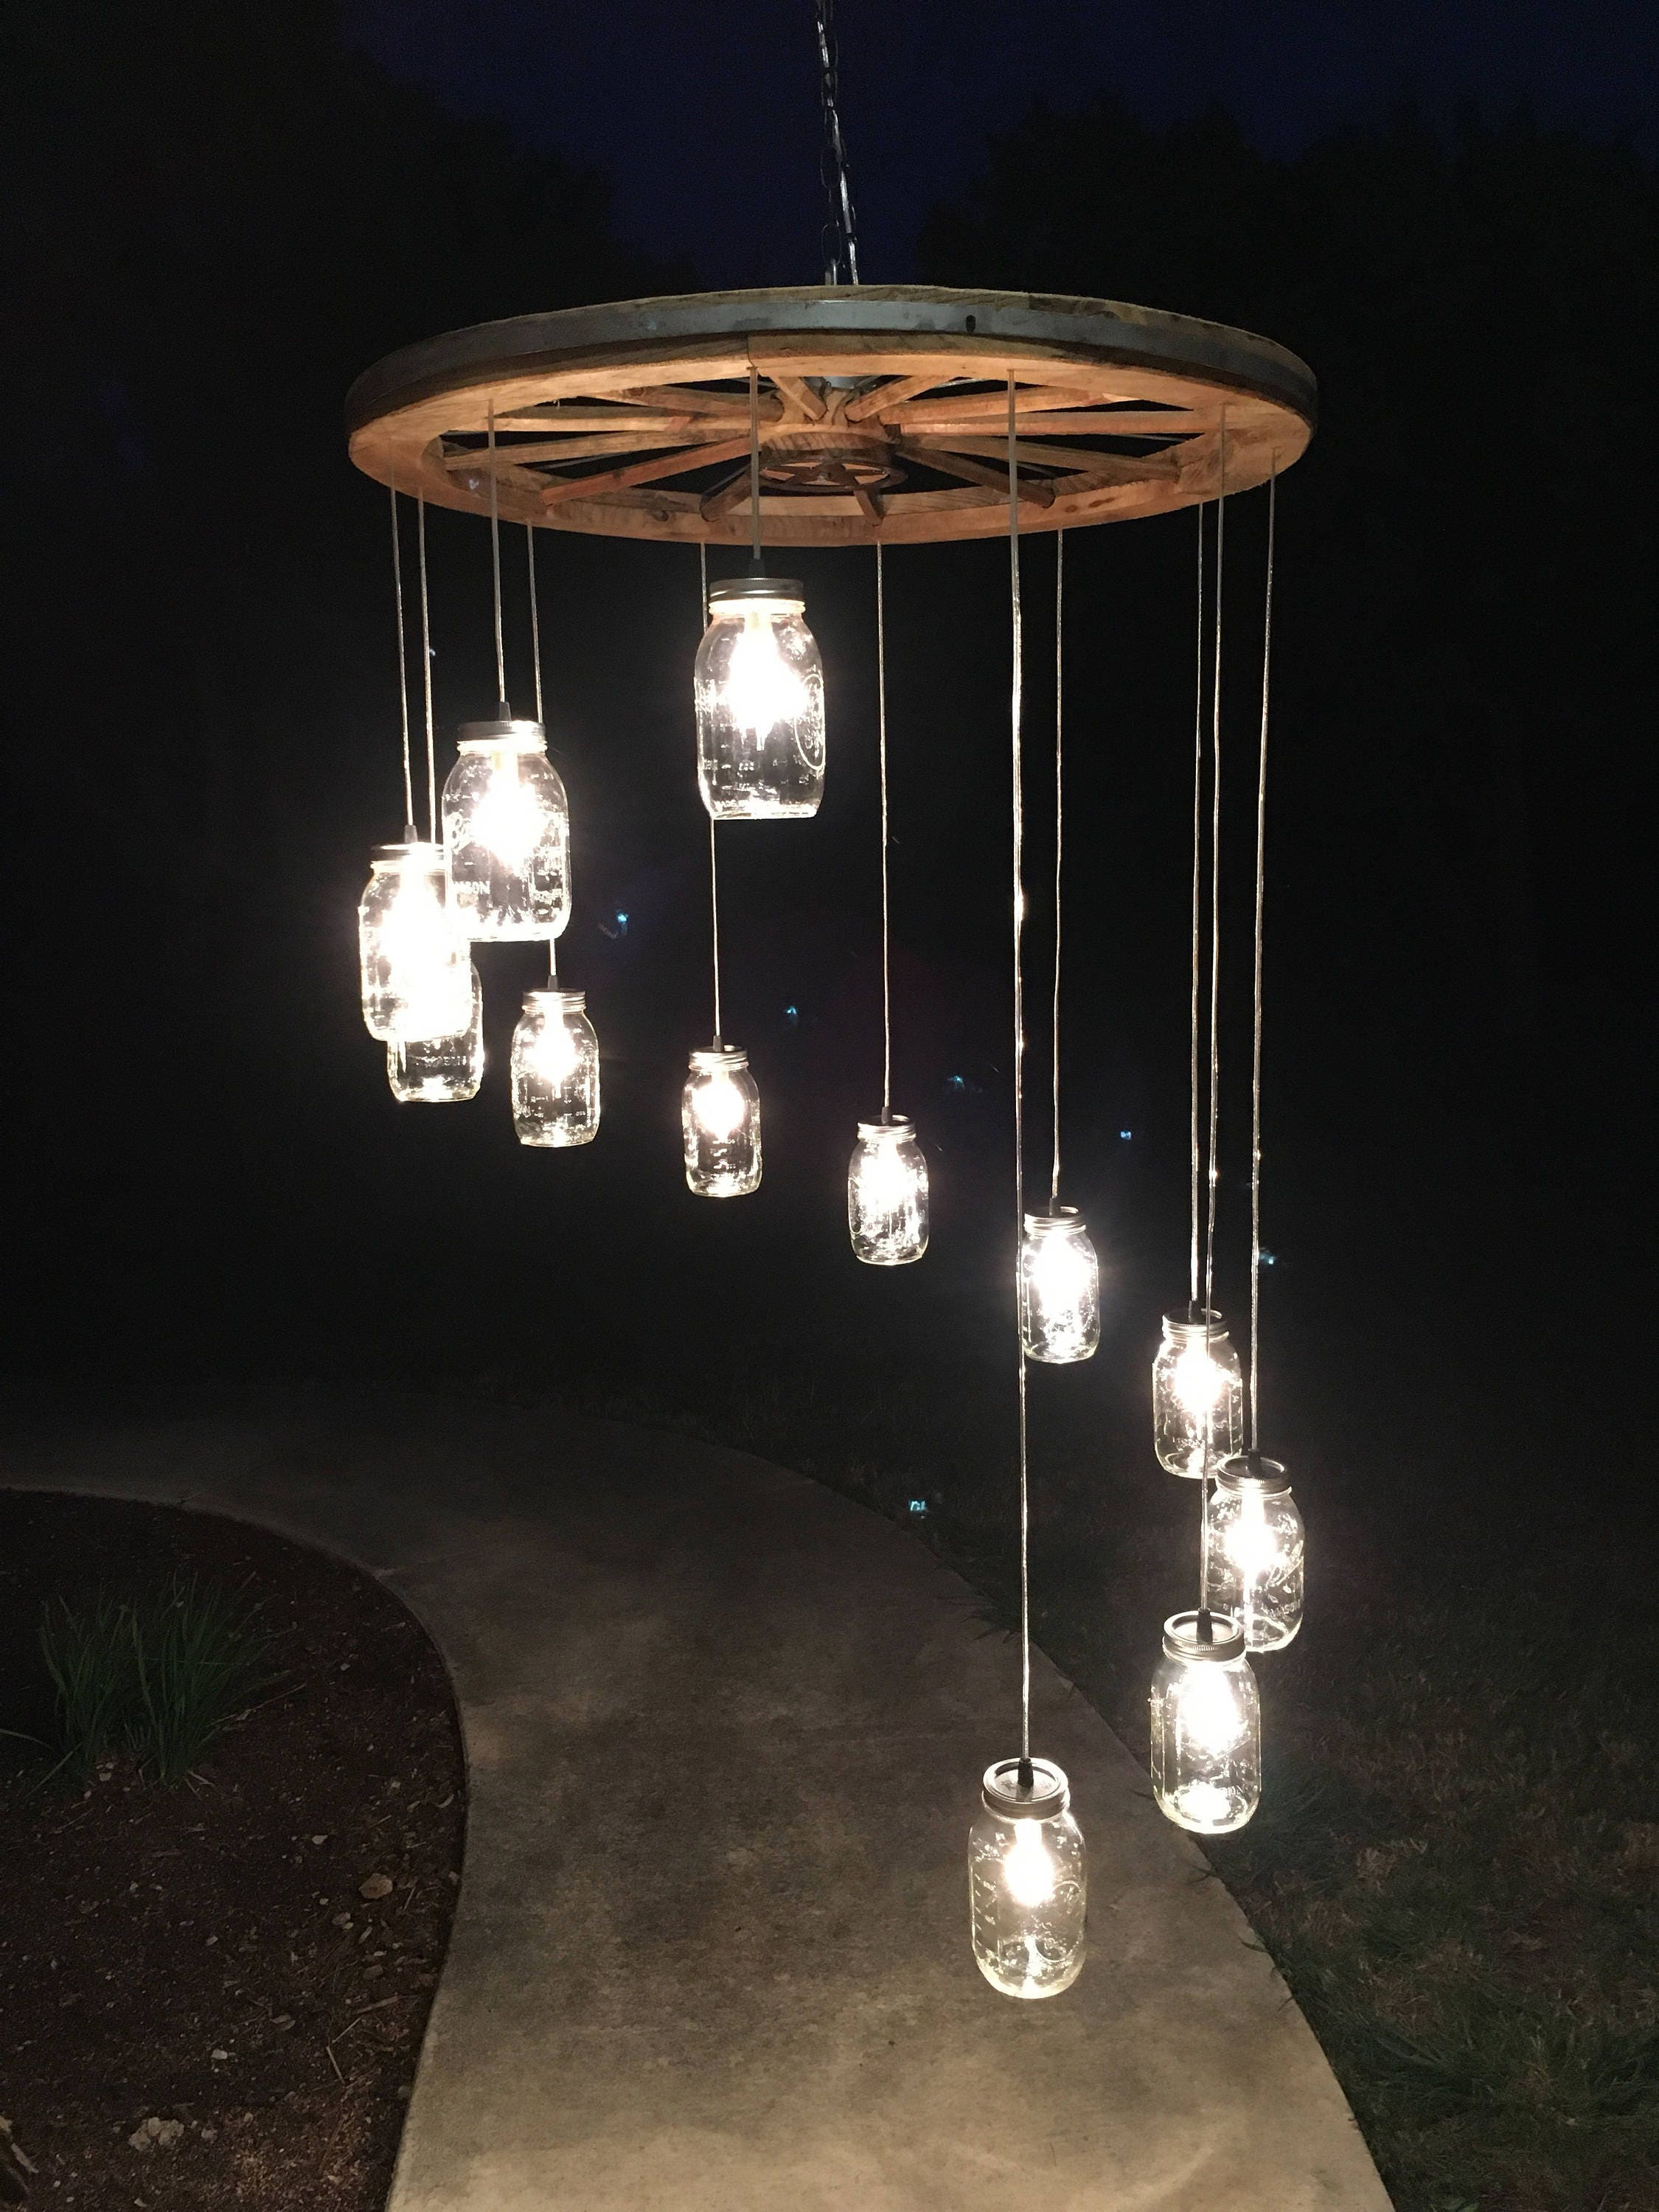 Description. This Is A 12 Spoke Wagon Wheel Chandelier ... Idea